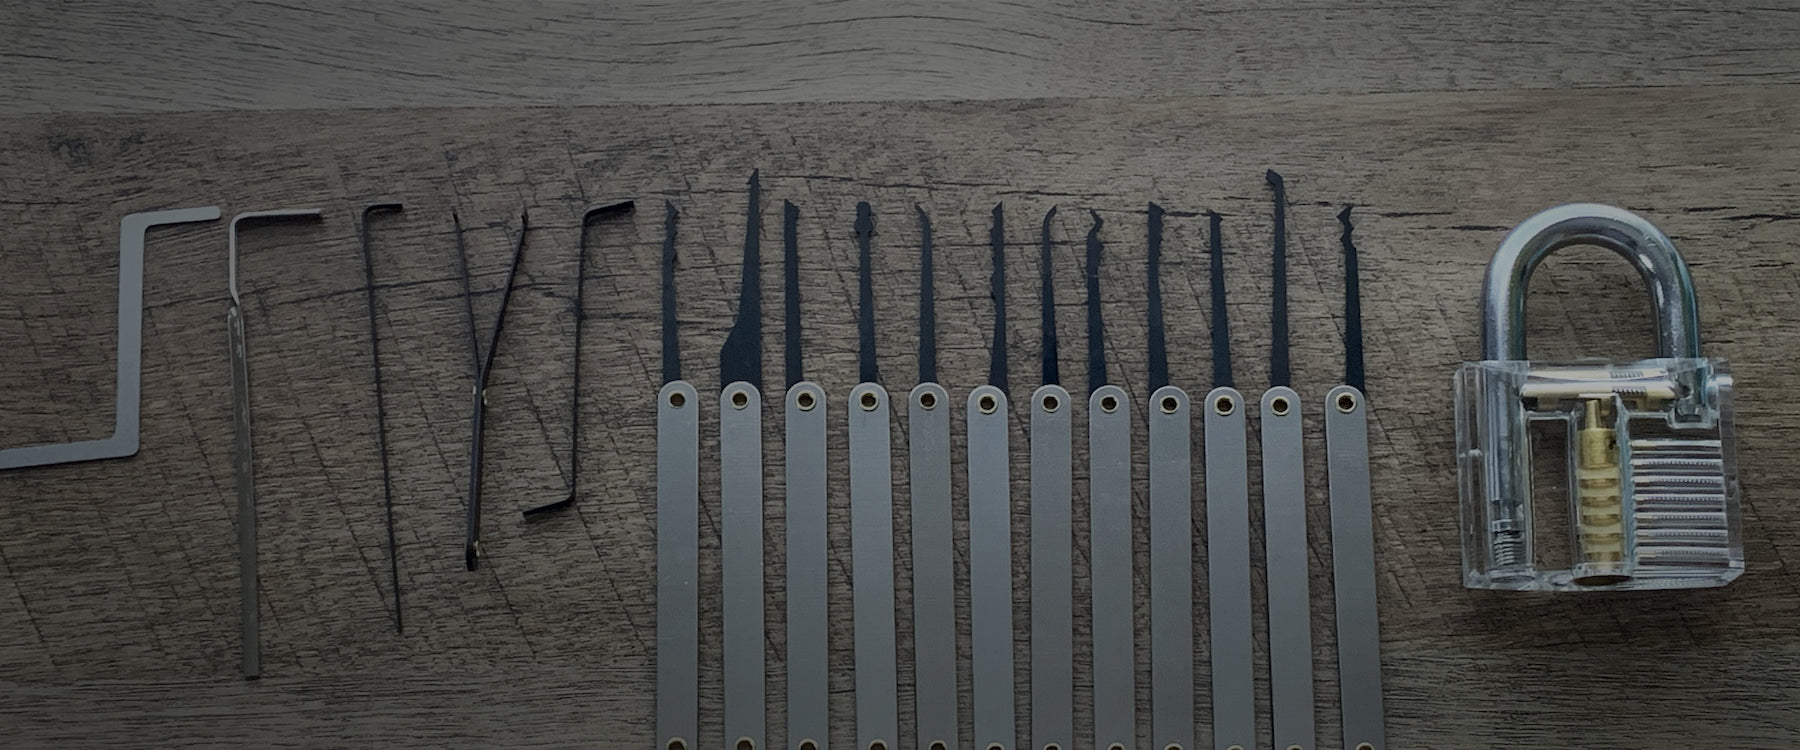 The best place for getting started with the art of lockpicking Lock Pick Genius